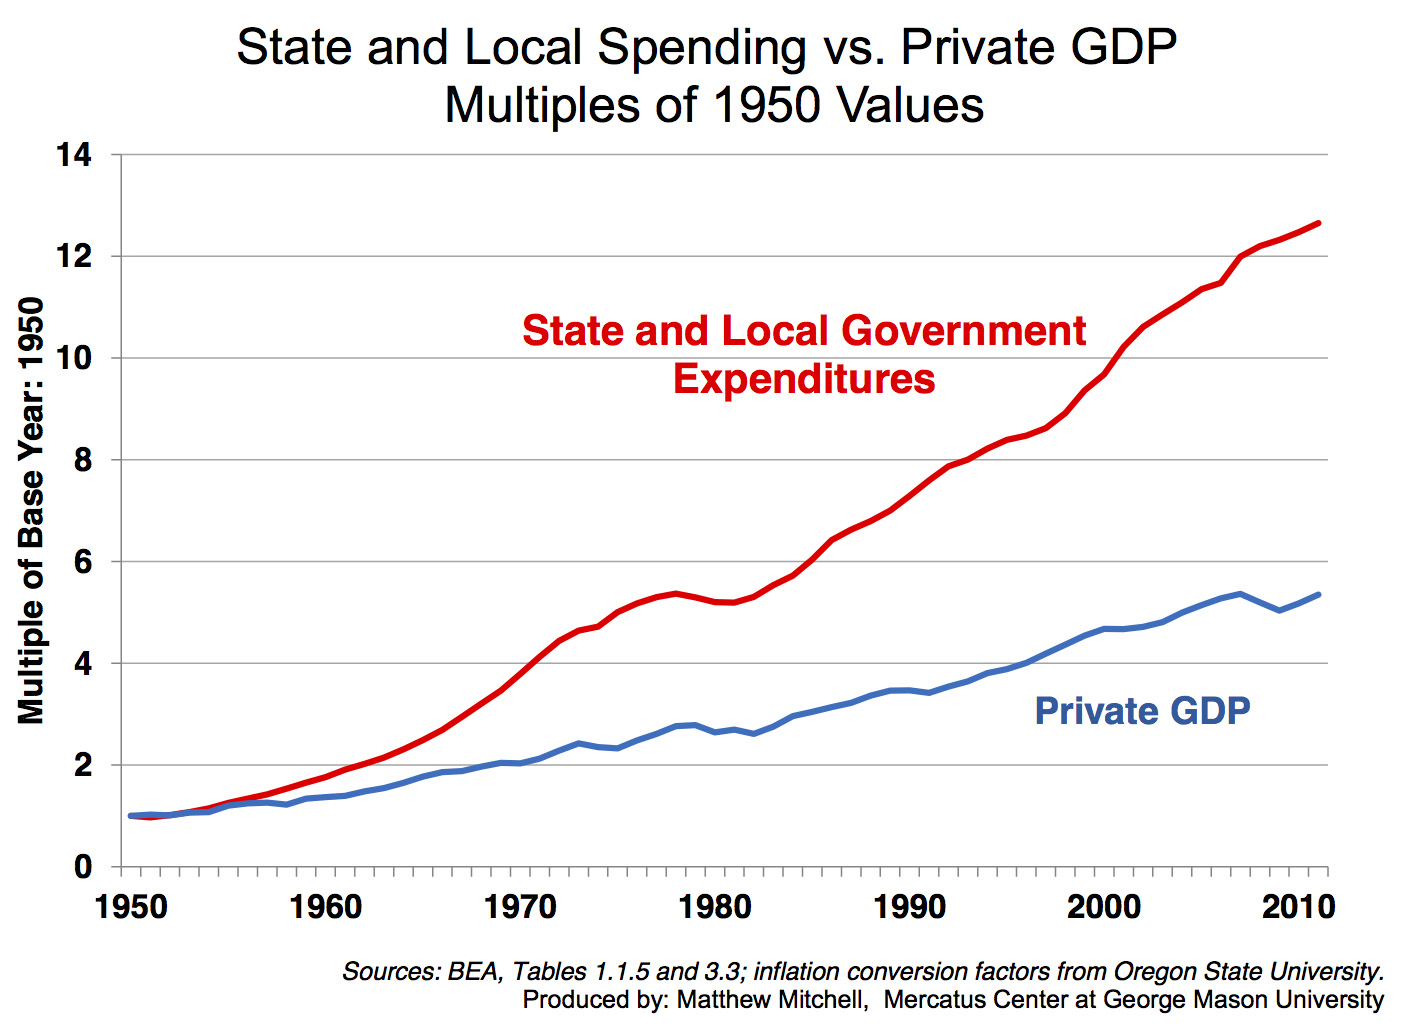 State and Local Spending vs Private GDP